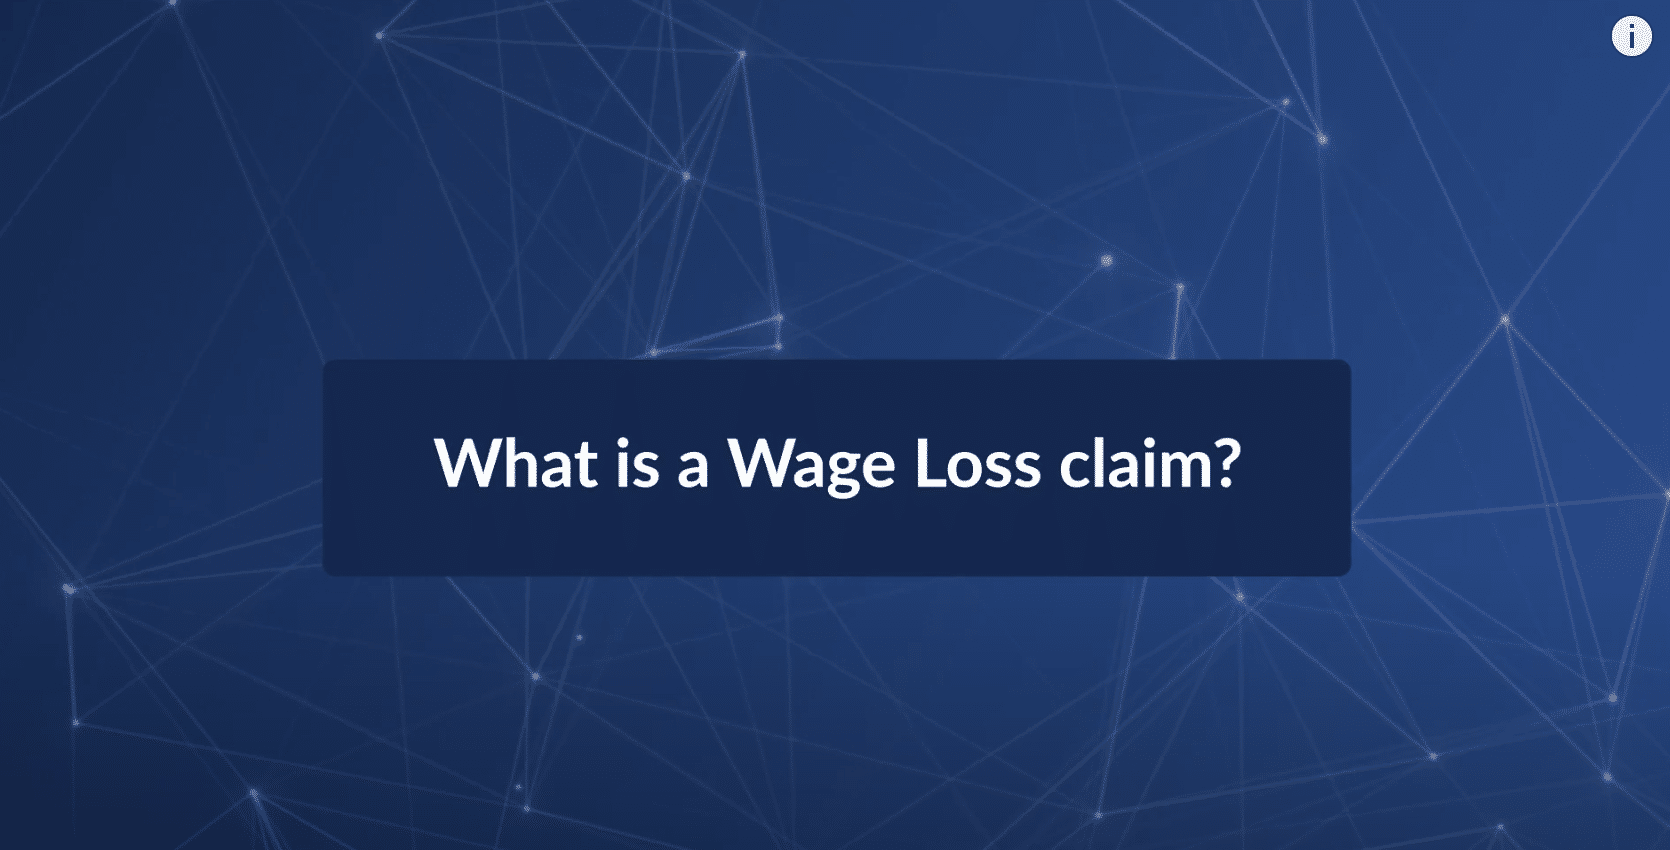 What is a Wage Loss Claim?